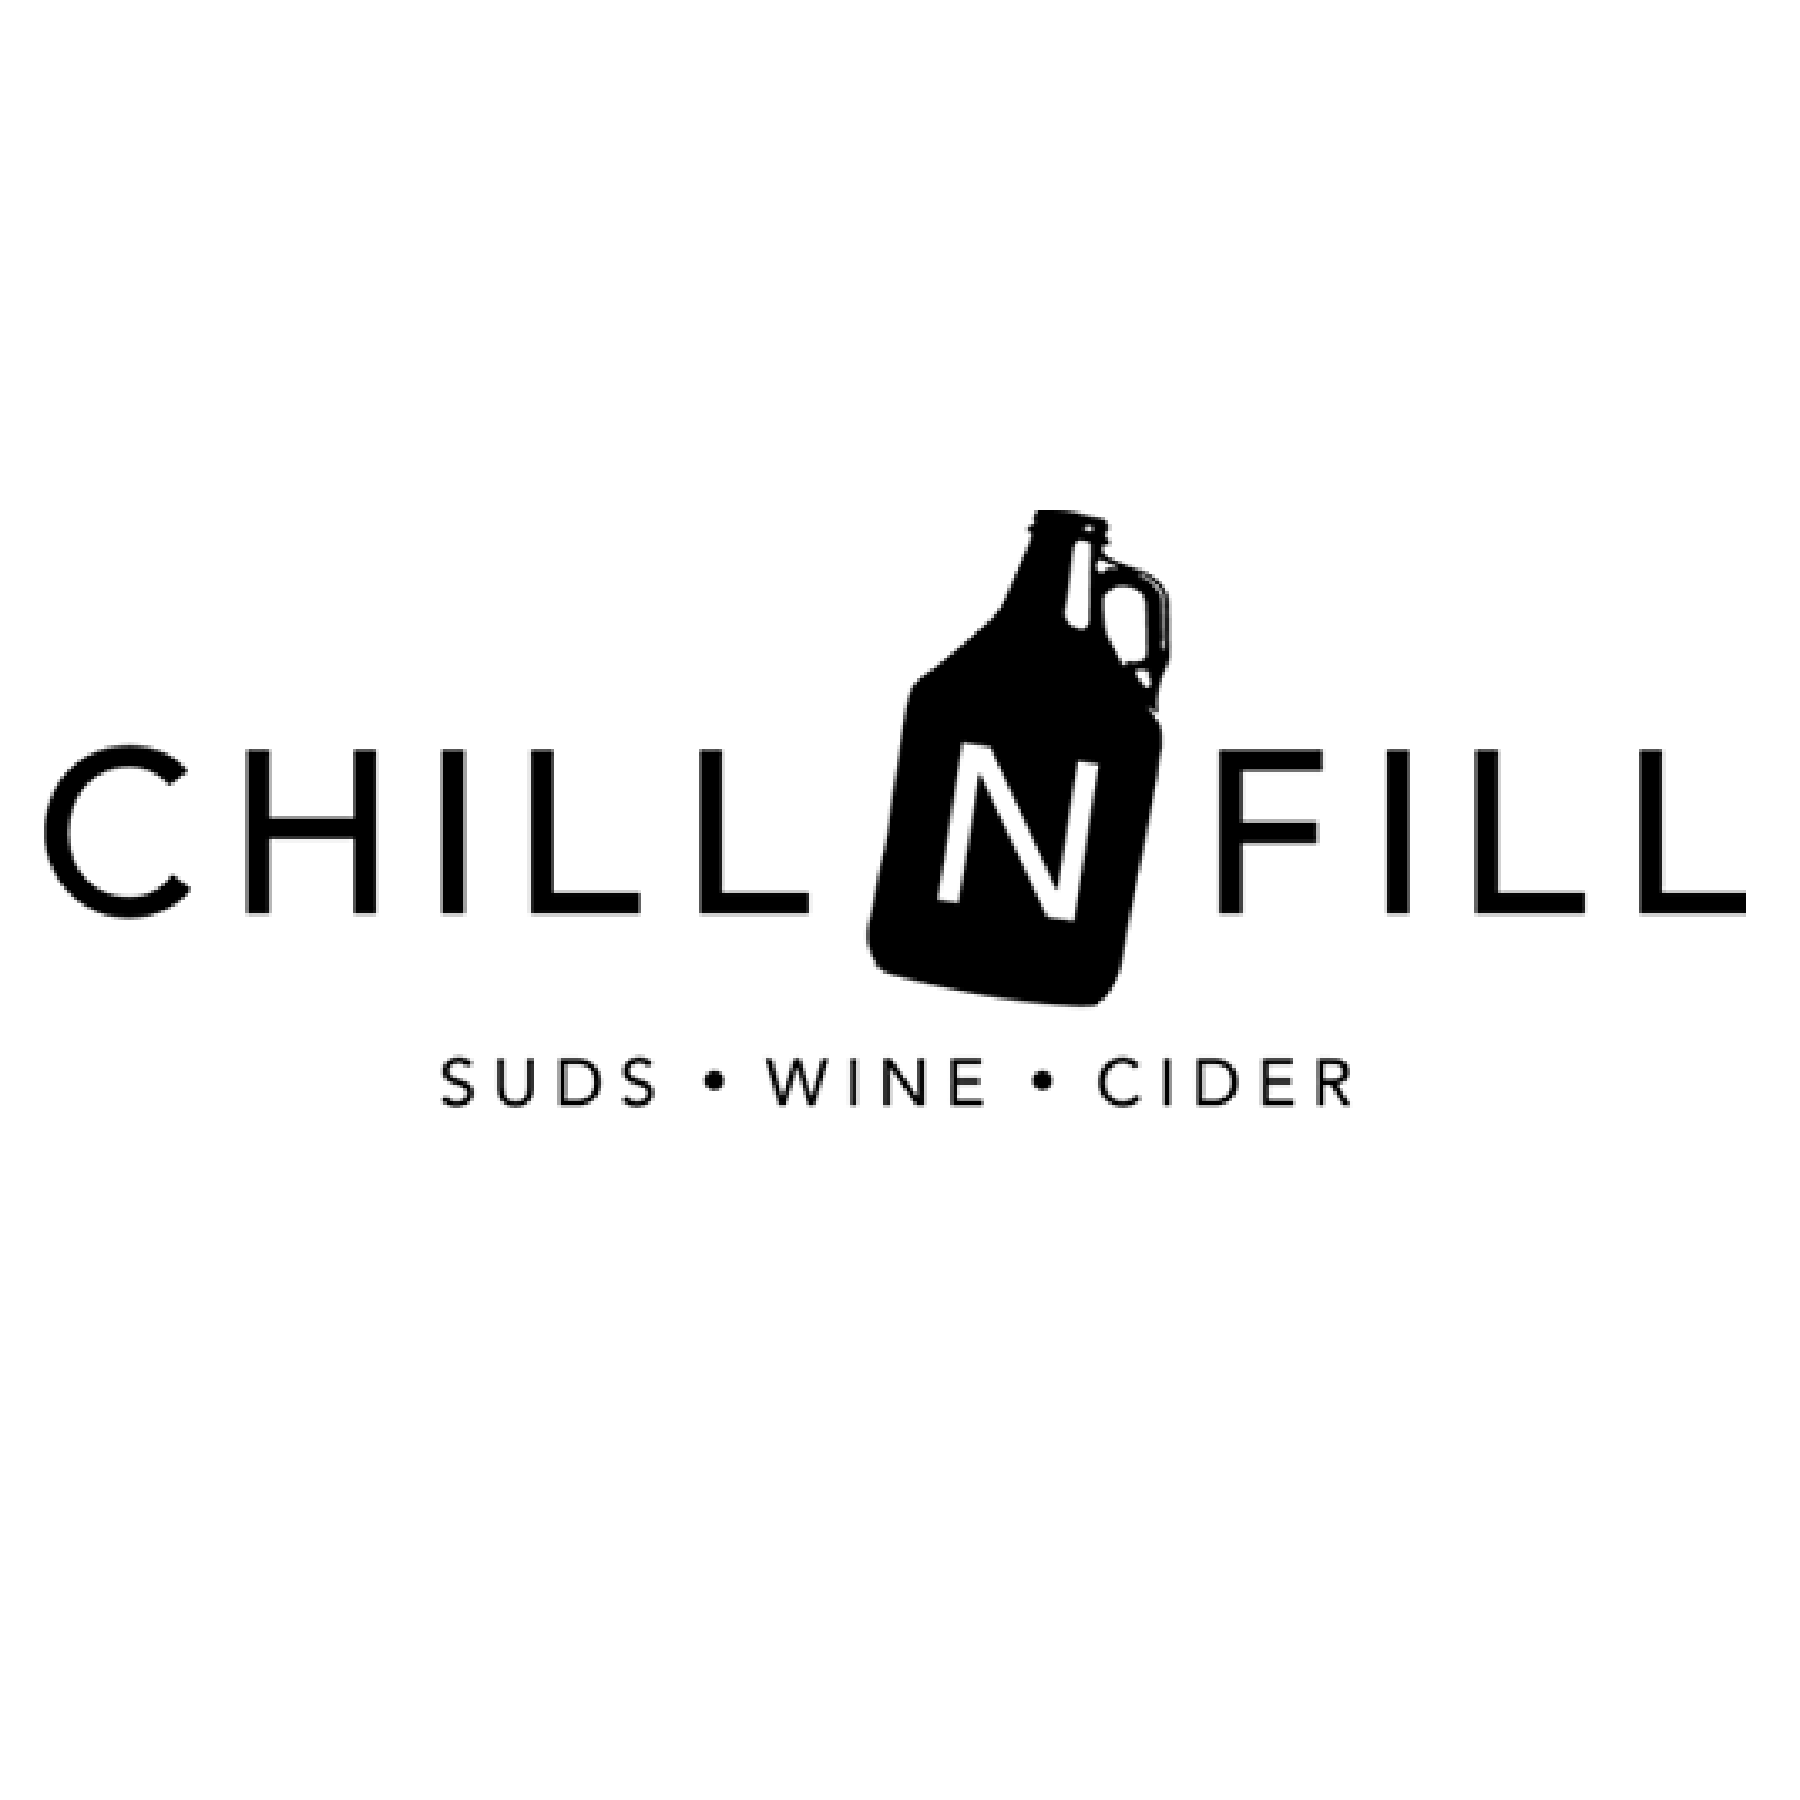 LOGO - Chill n Fill-01.png